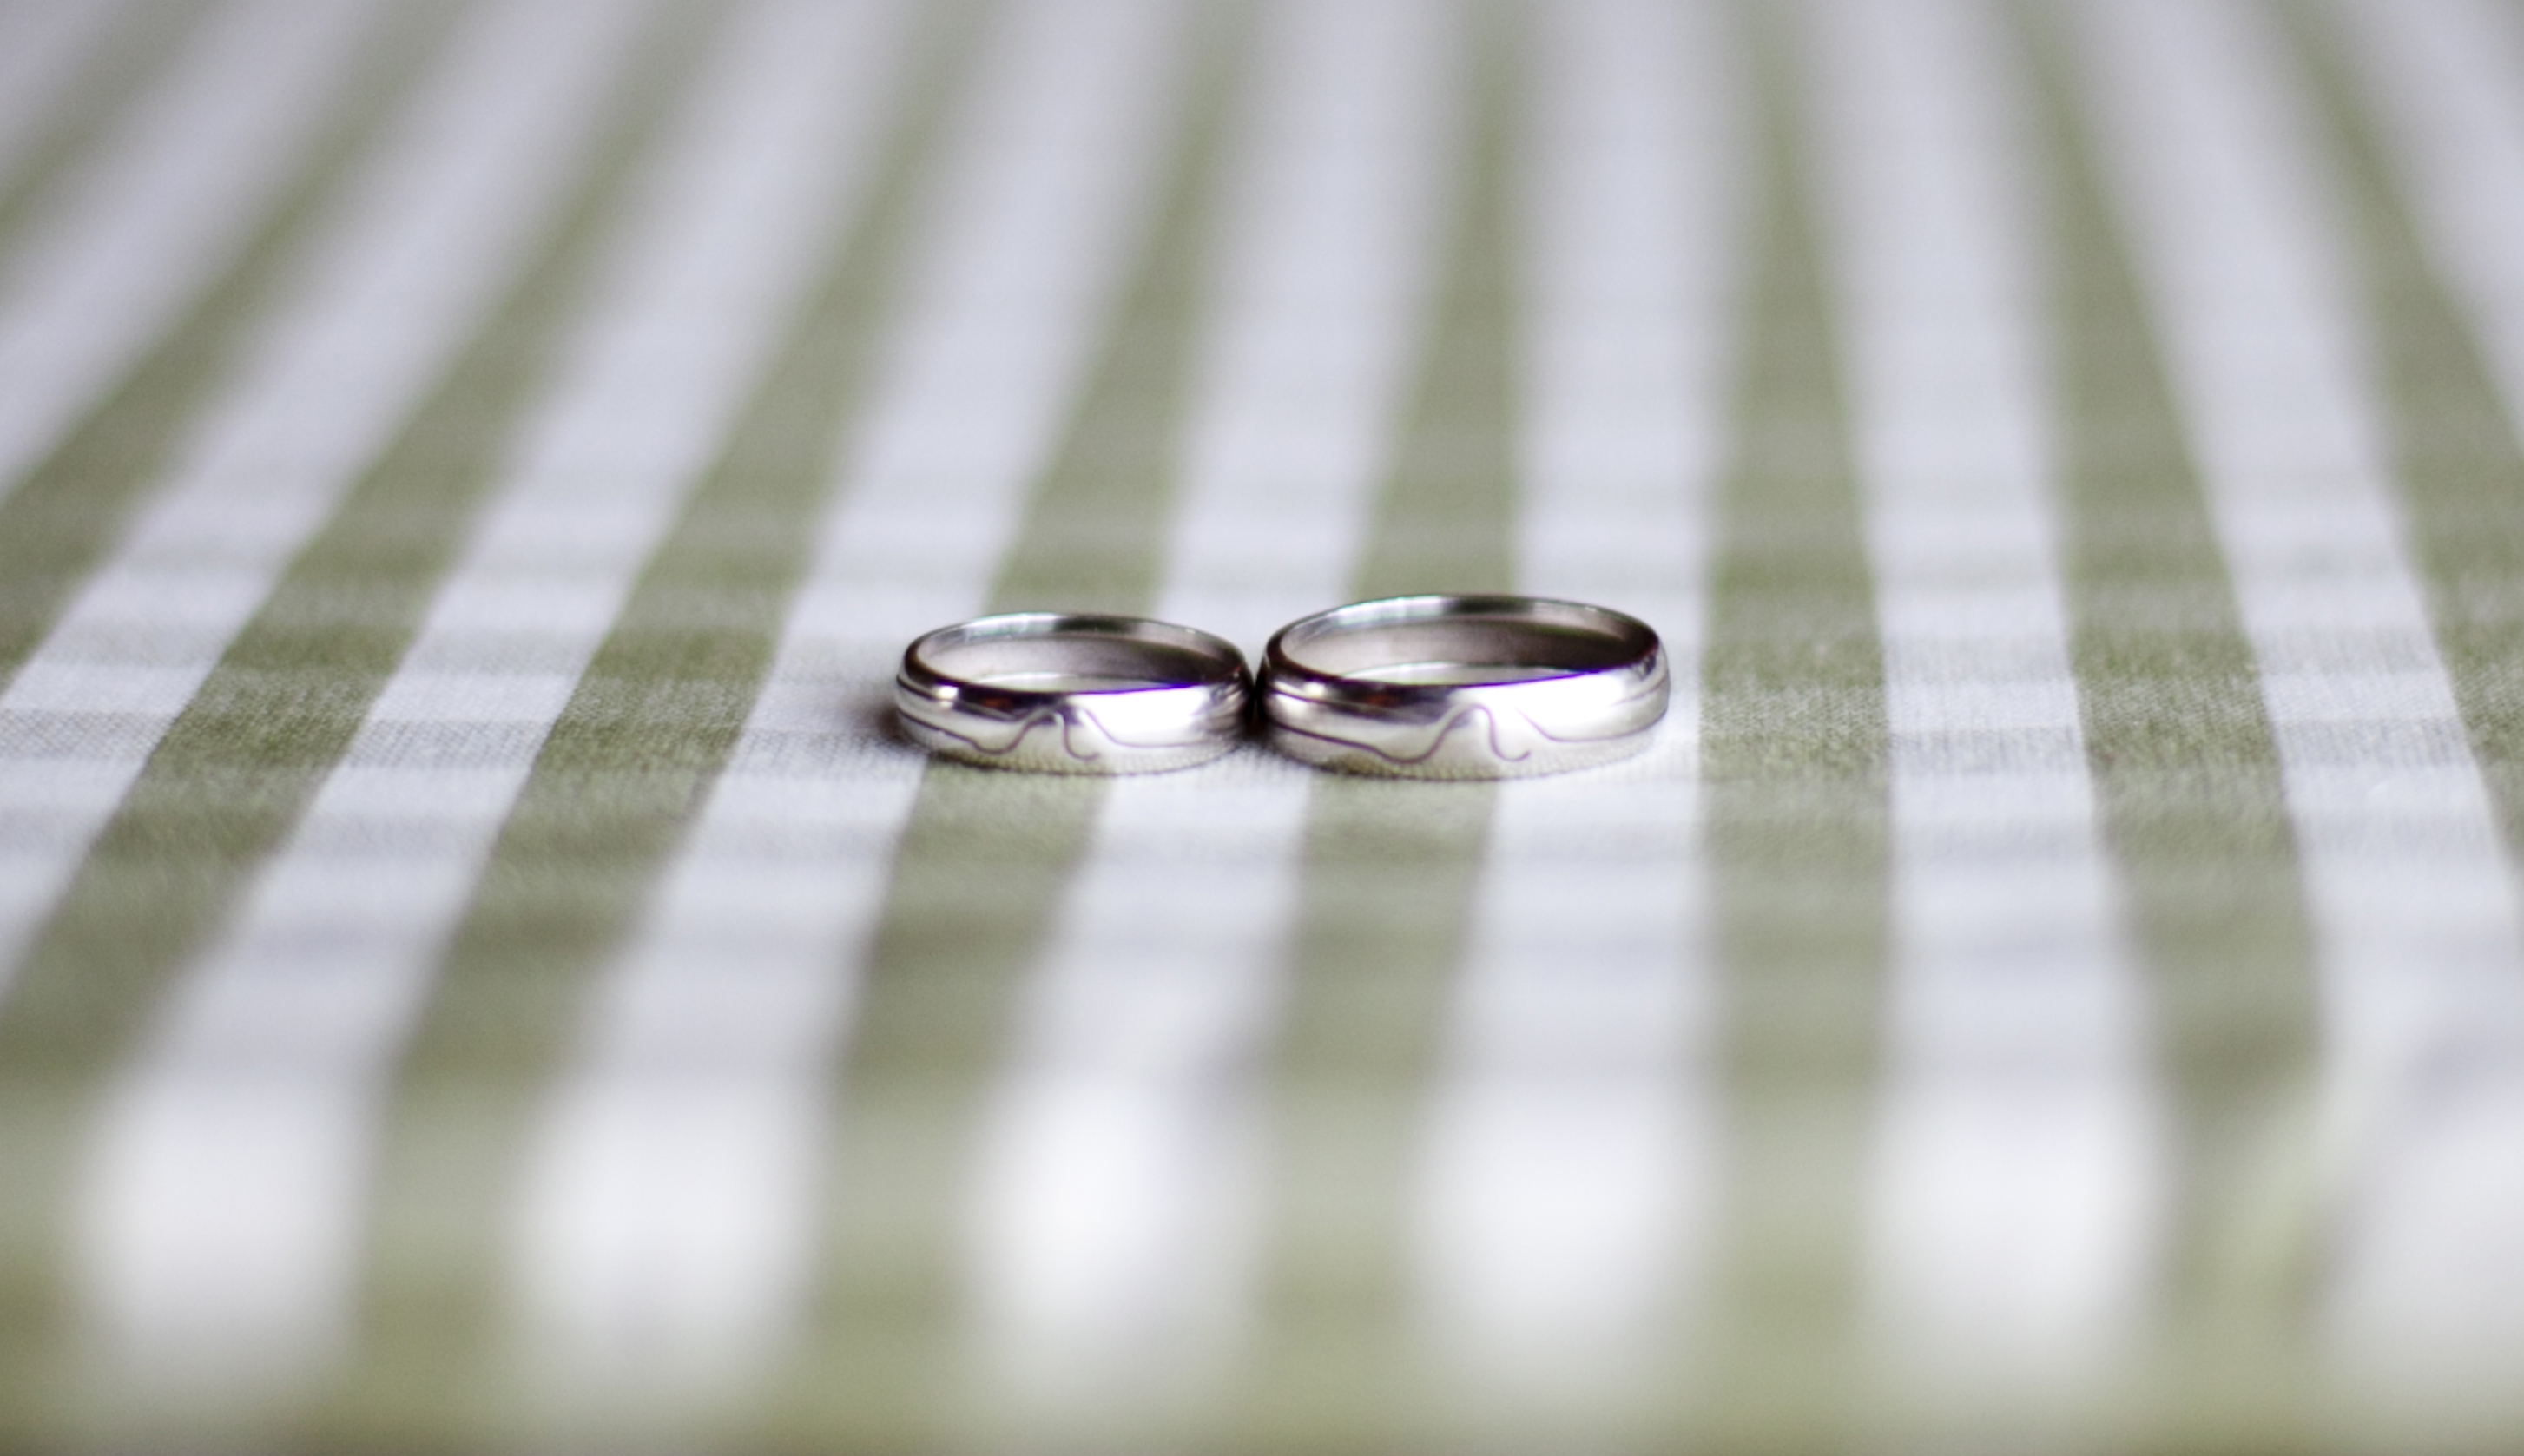 Wedding Ring by FJM on GrabCAD